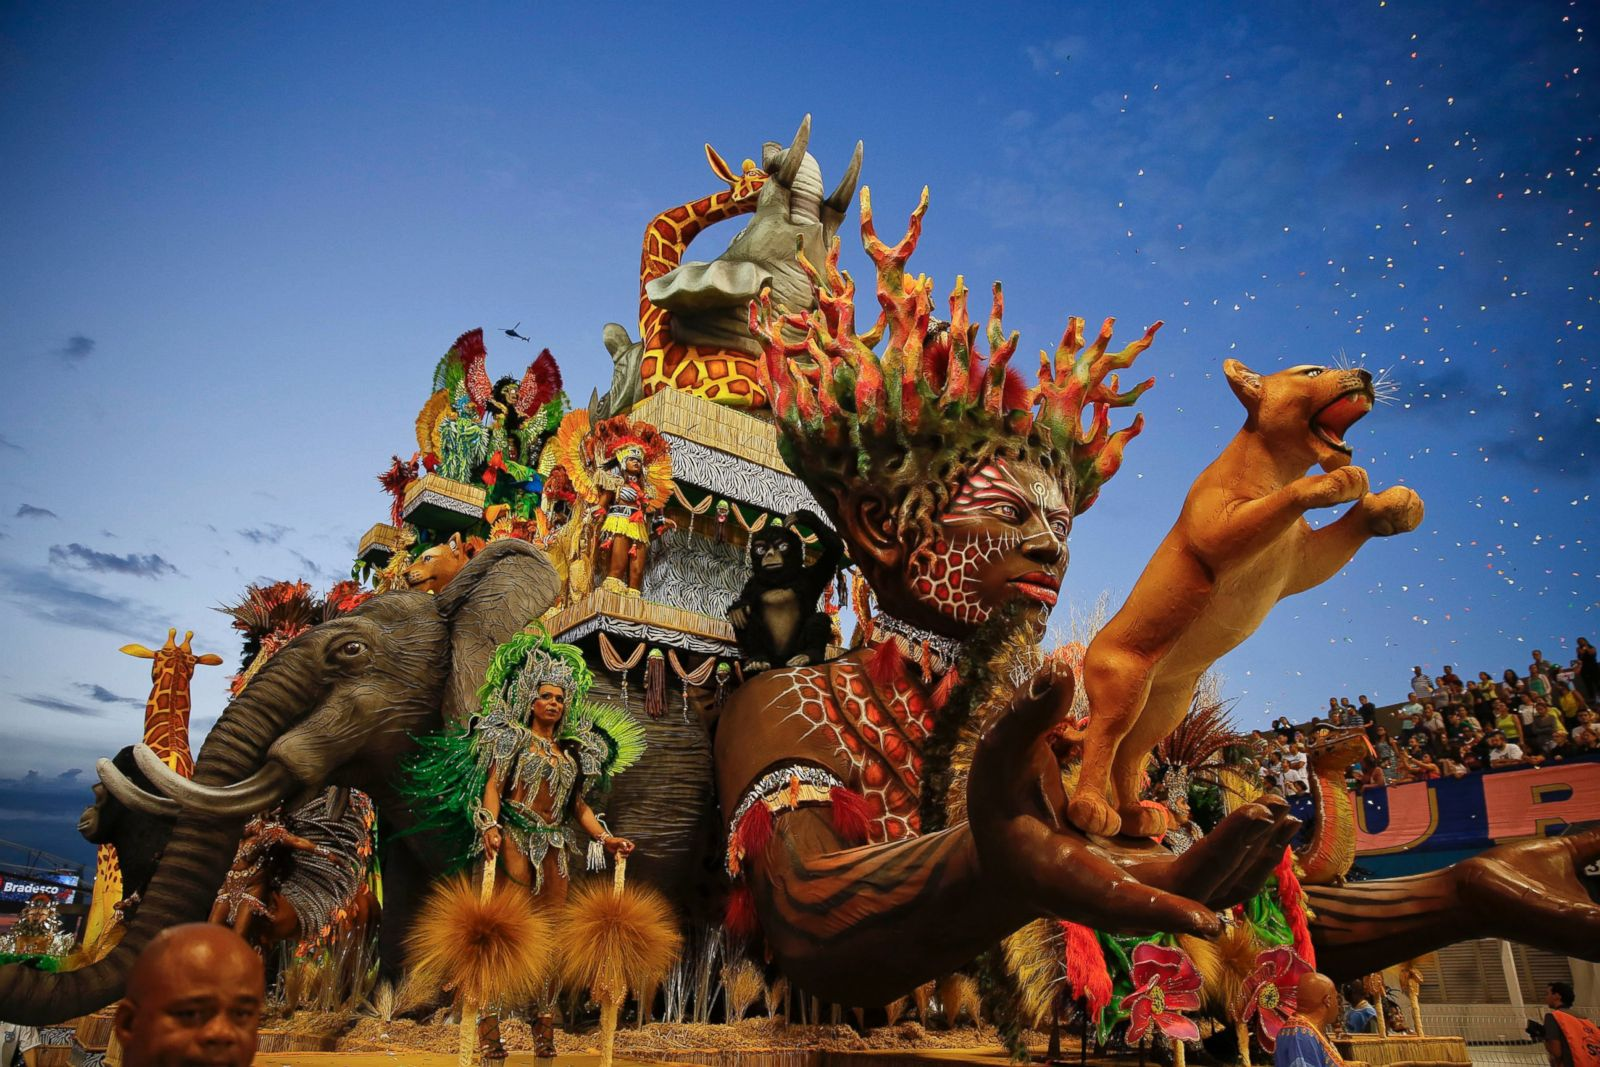 Budget Energy Top Up >> Best Images of Carnival in Brazil Photos | Image #22 - ABC ...